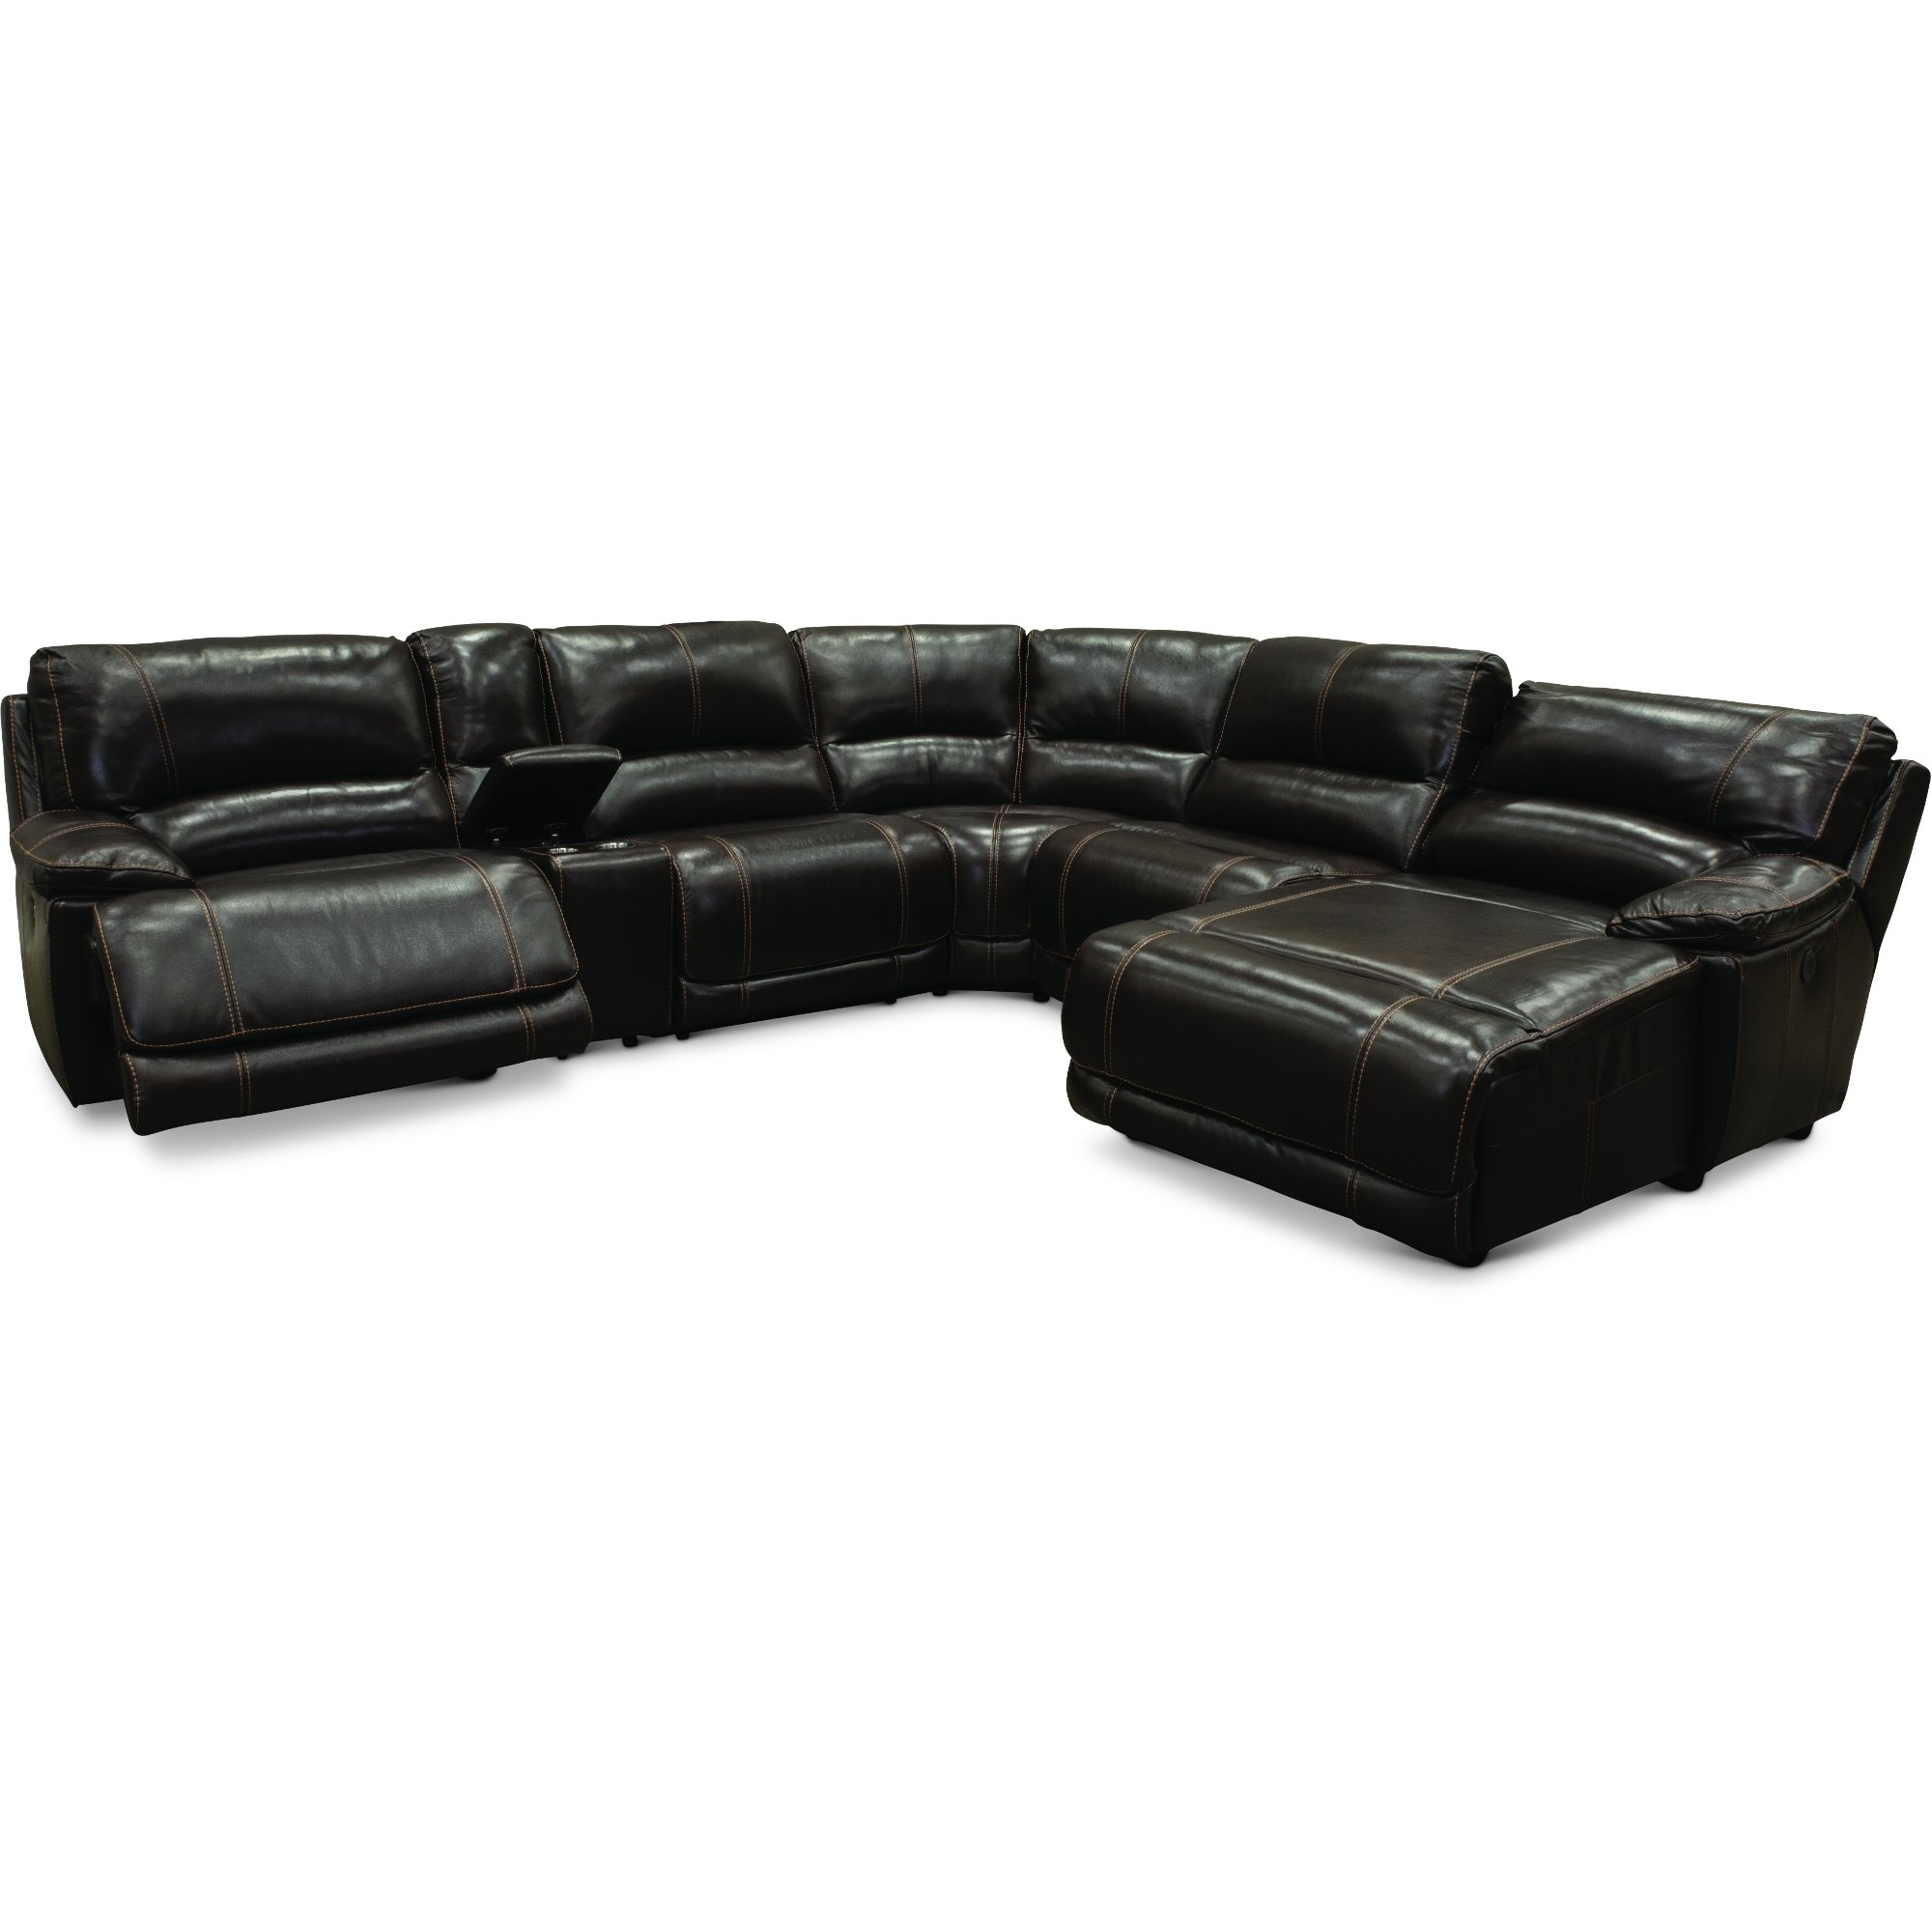 6 Piece Sectional Sofa Set | Baci Living Room With Regard To Marcus Grey 6 Piece Sectionals With  Power Headrest & Usb (Image 8 of 25)